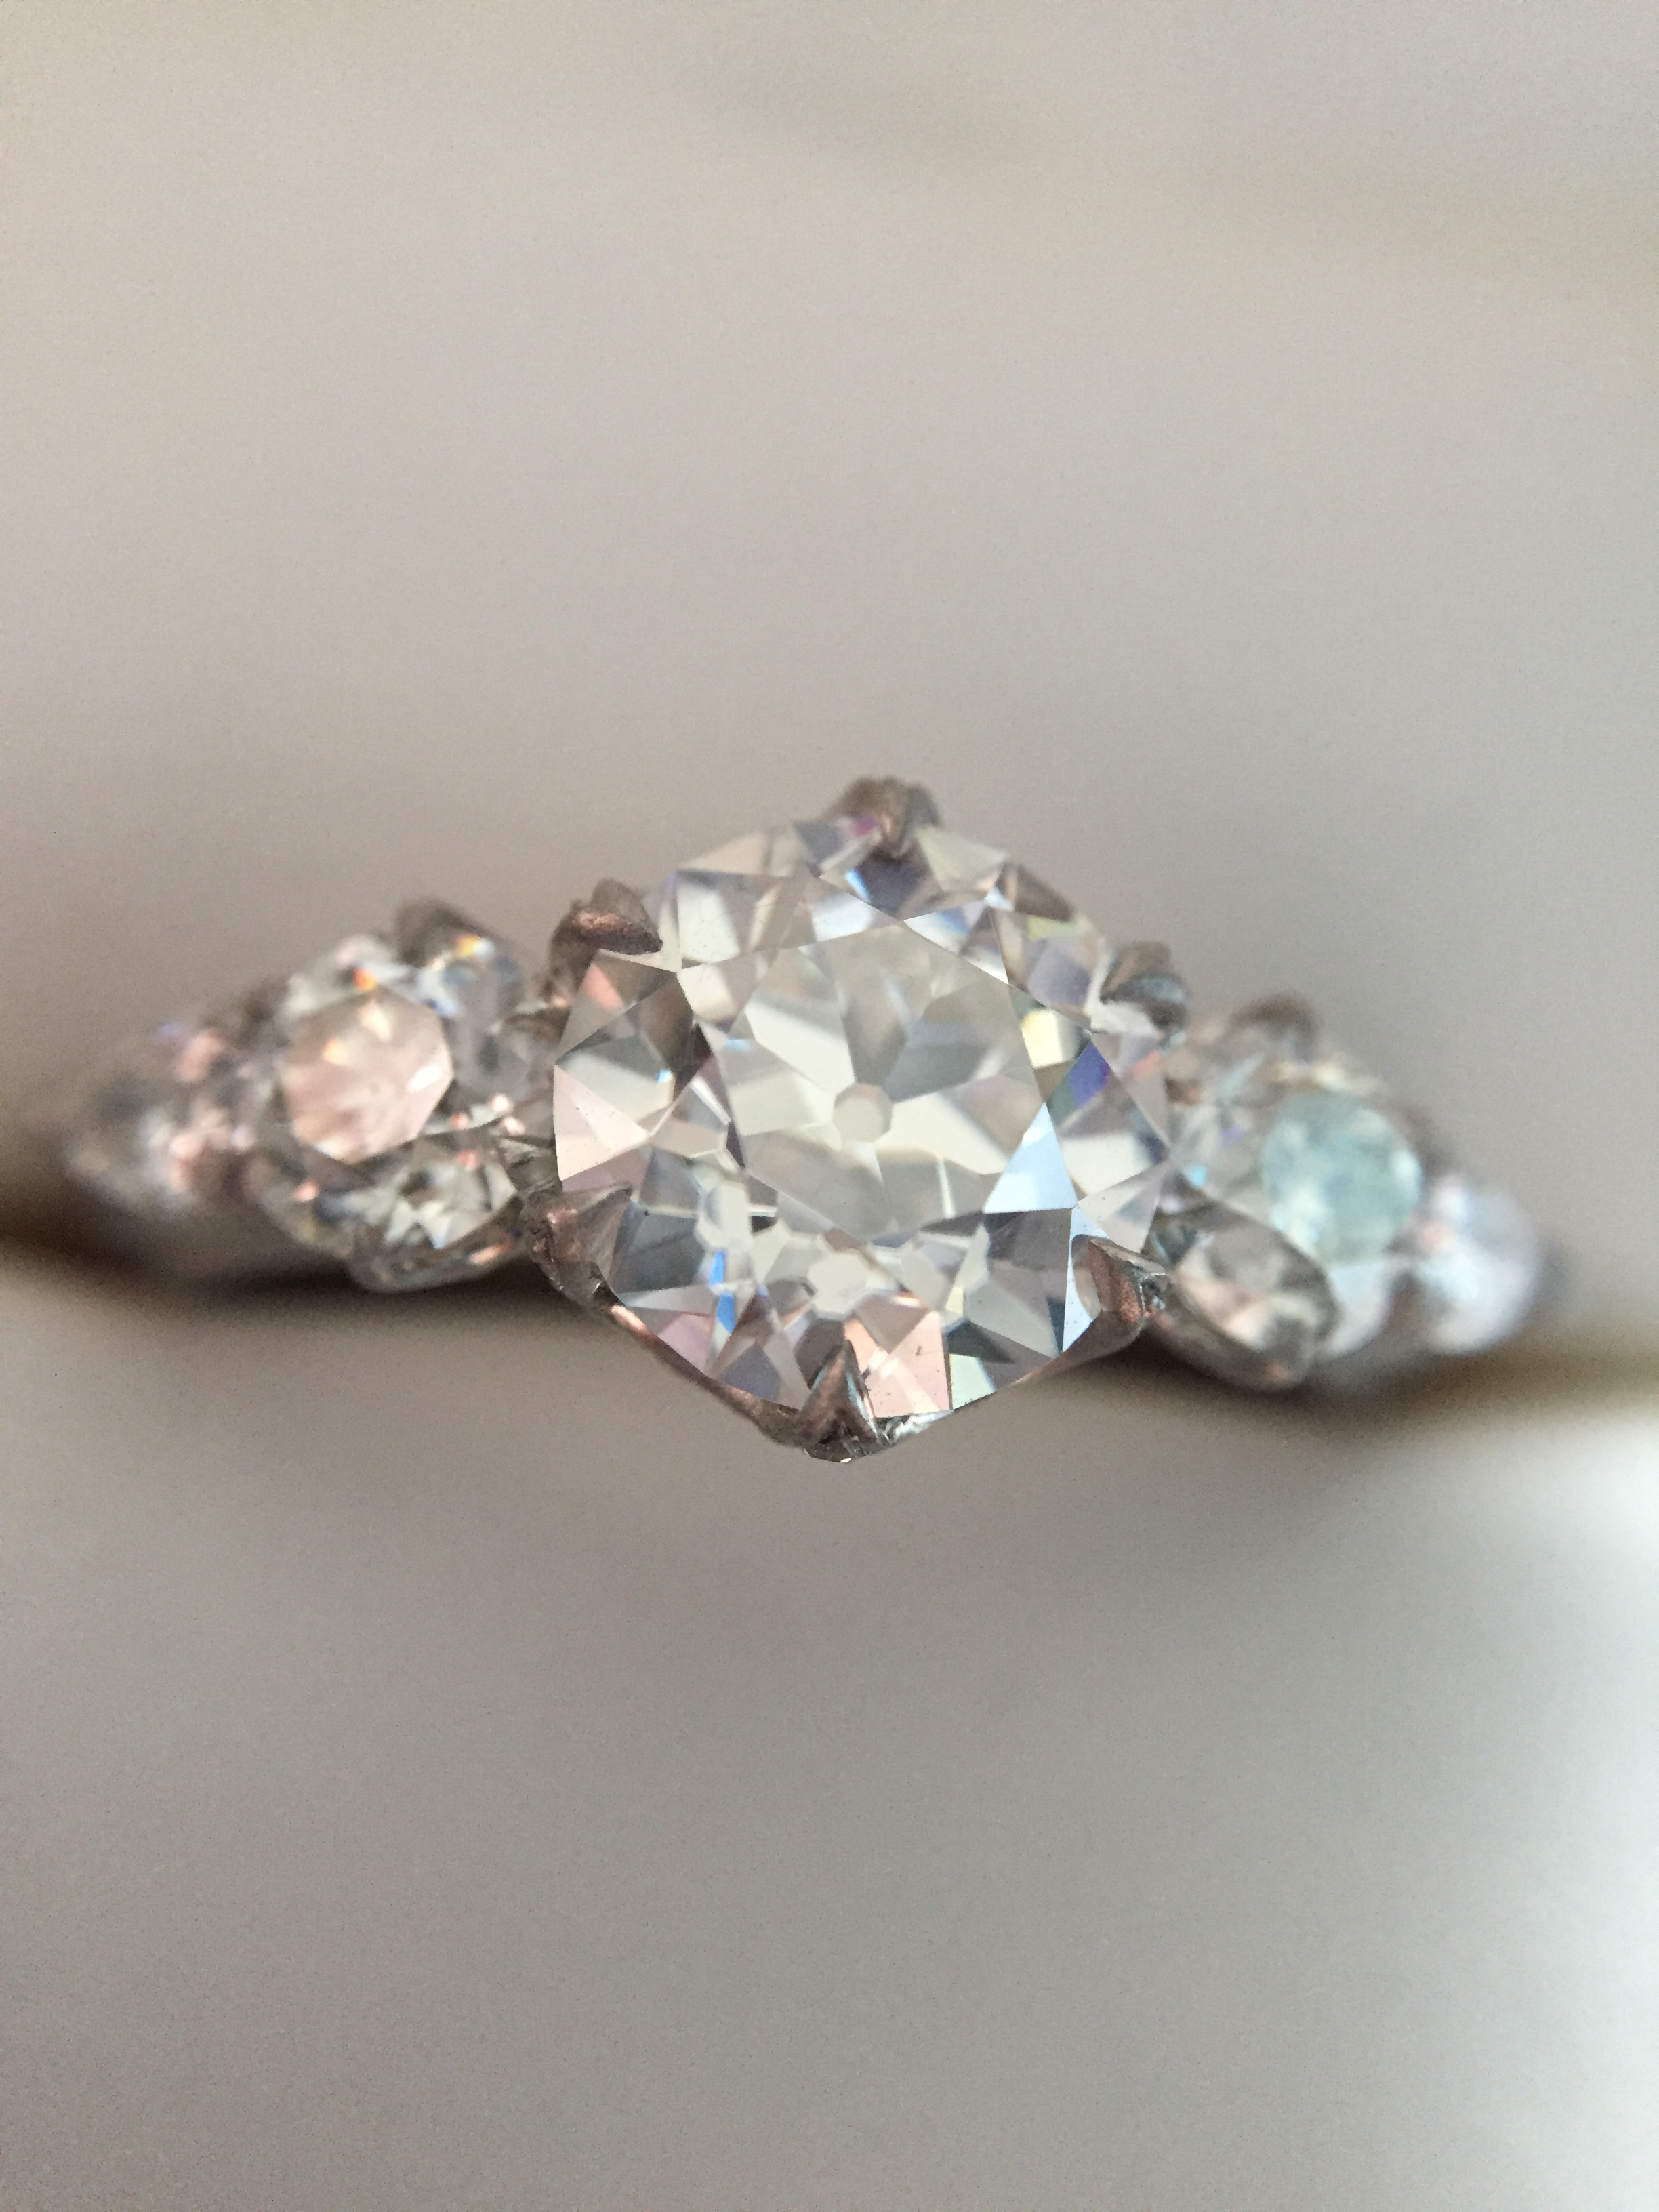 cs diamonds langerman and diamond grading encyclopedia the colour quality natural color cloudy qg